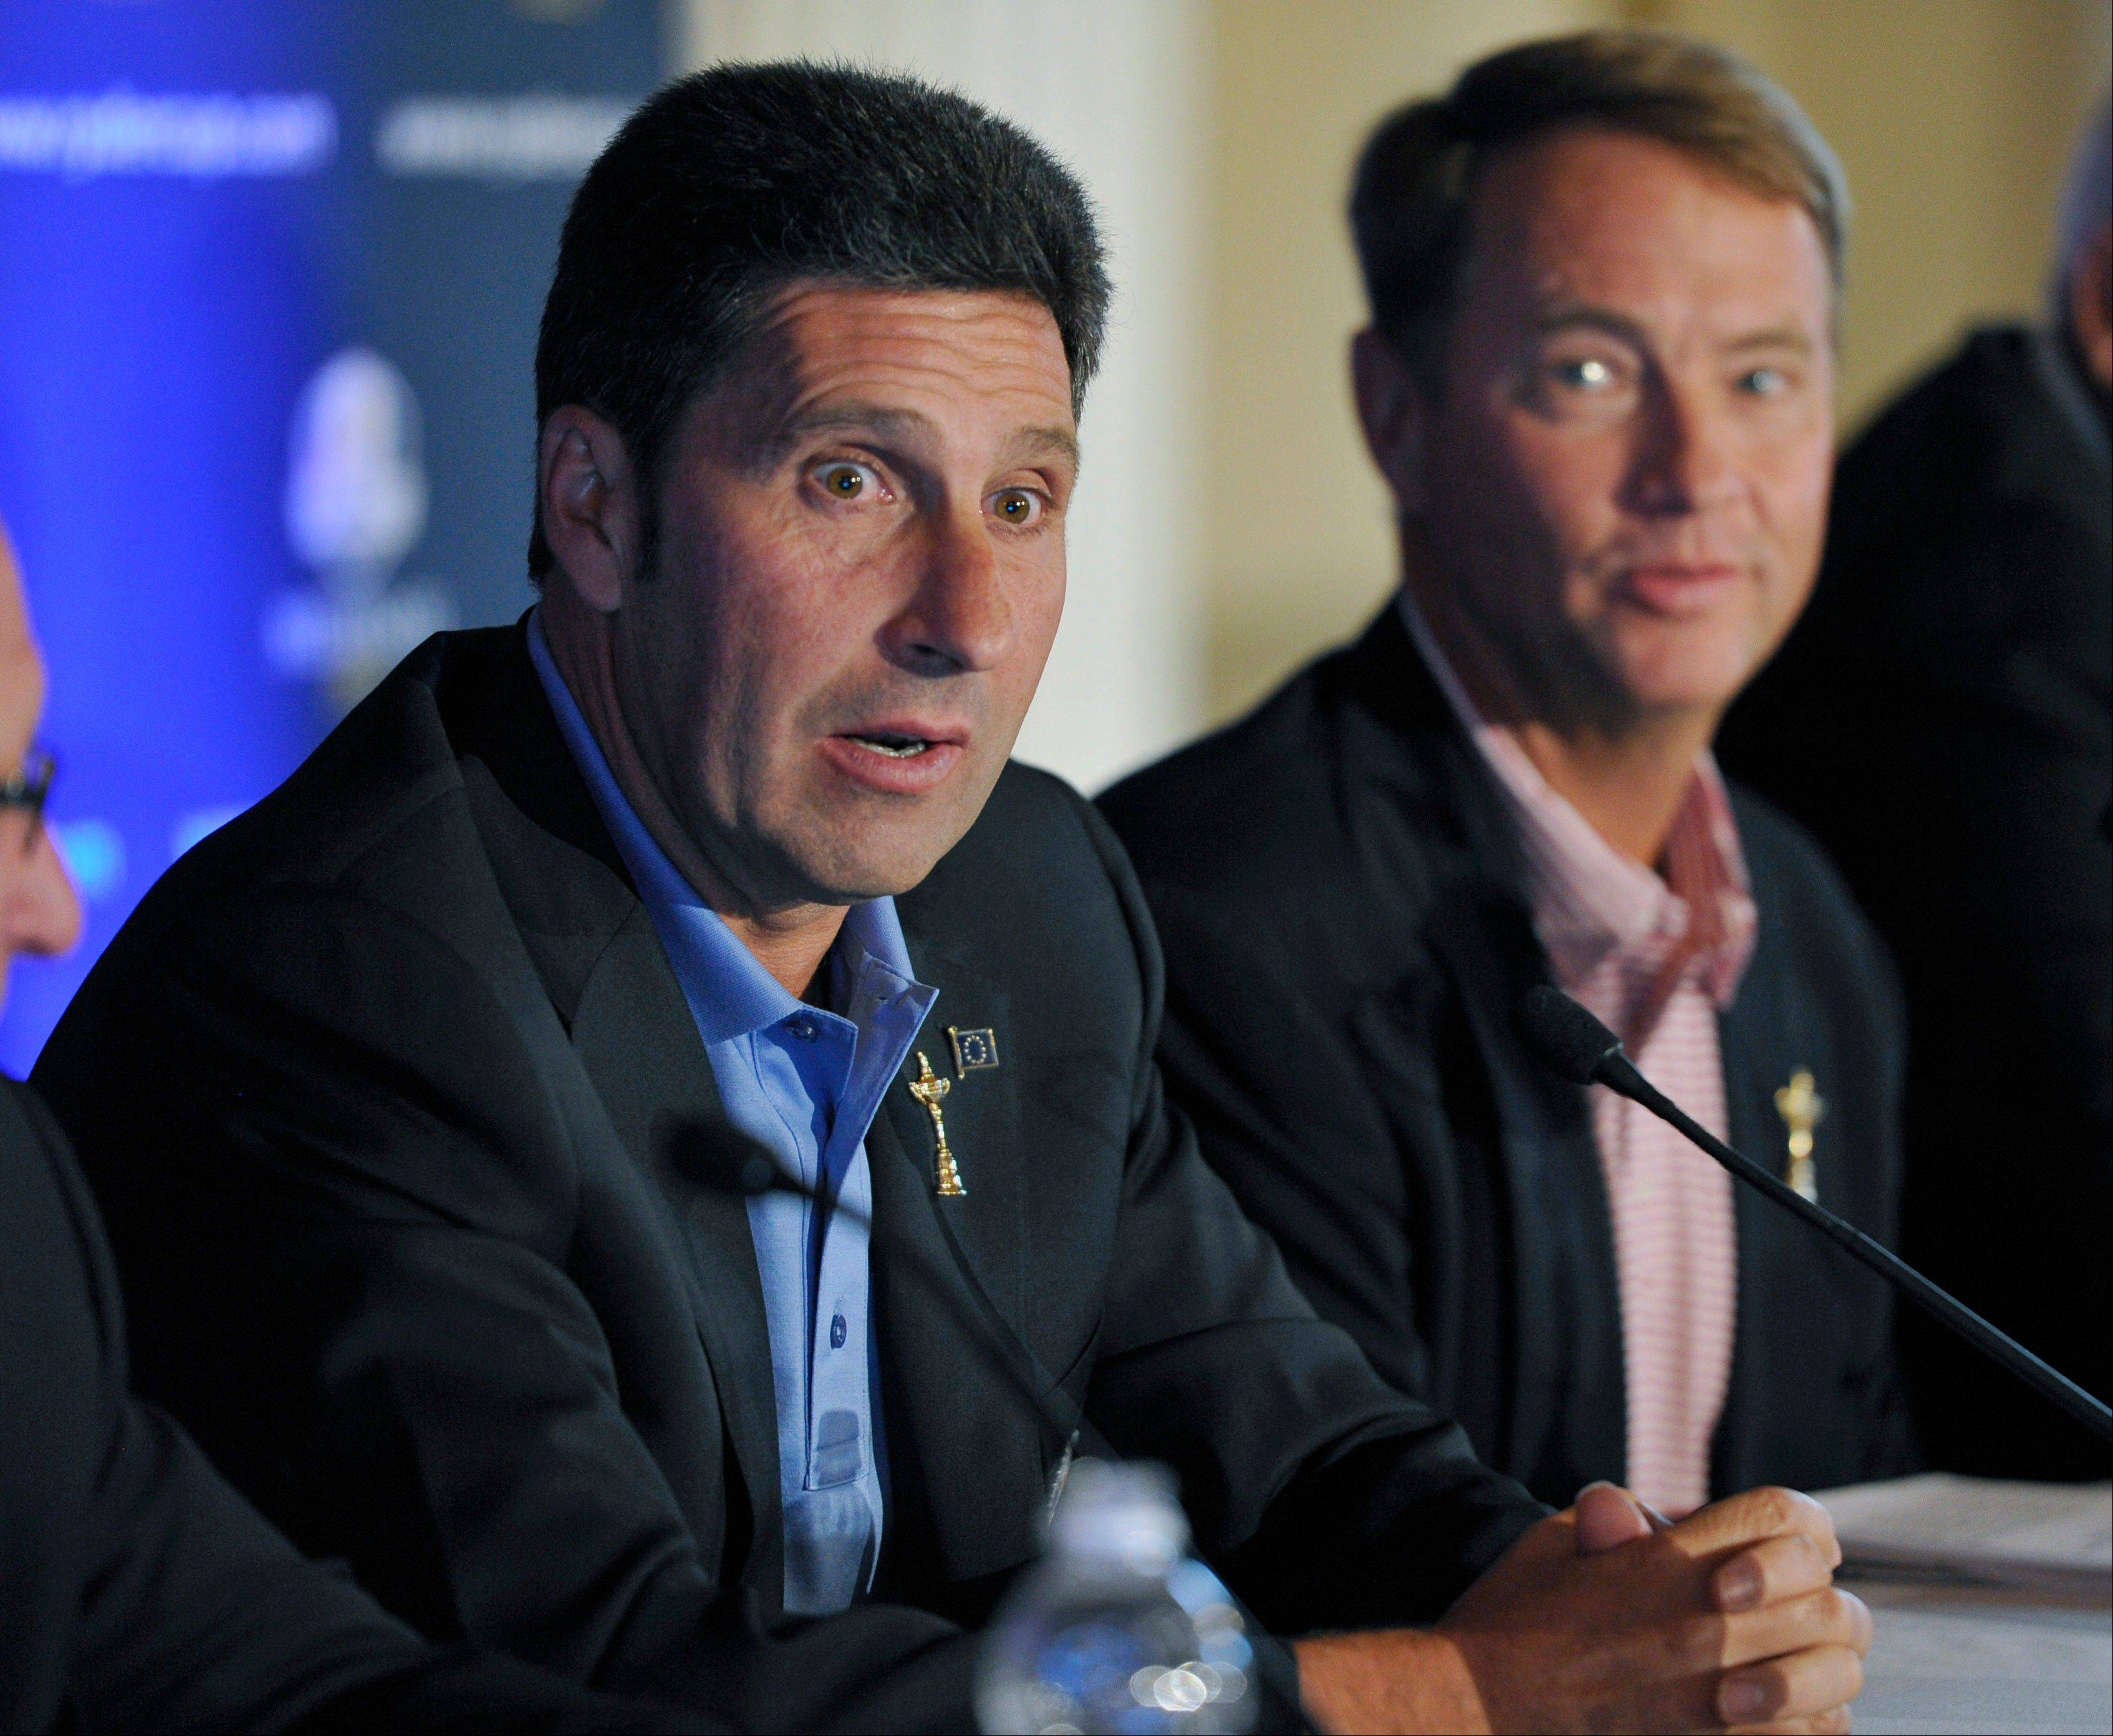 European Ryder Cup captain Jose Maria Olazabal, left, said he was surprised by Hunter Mahan�s absence from the U.S. Ryder Cup team, but he understands why Brandt Snedeker was chosen instead.